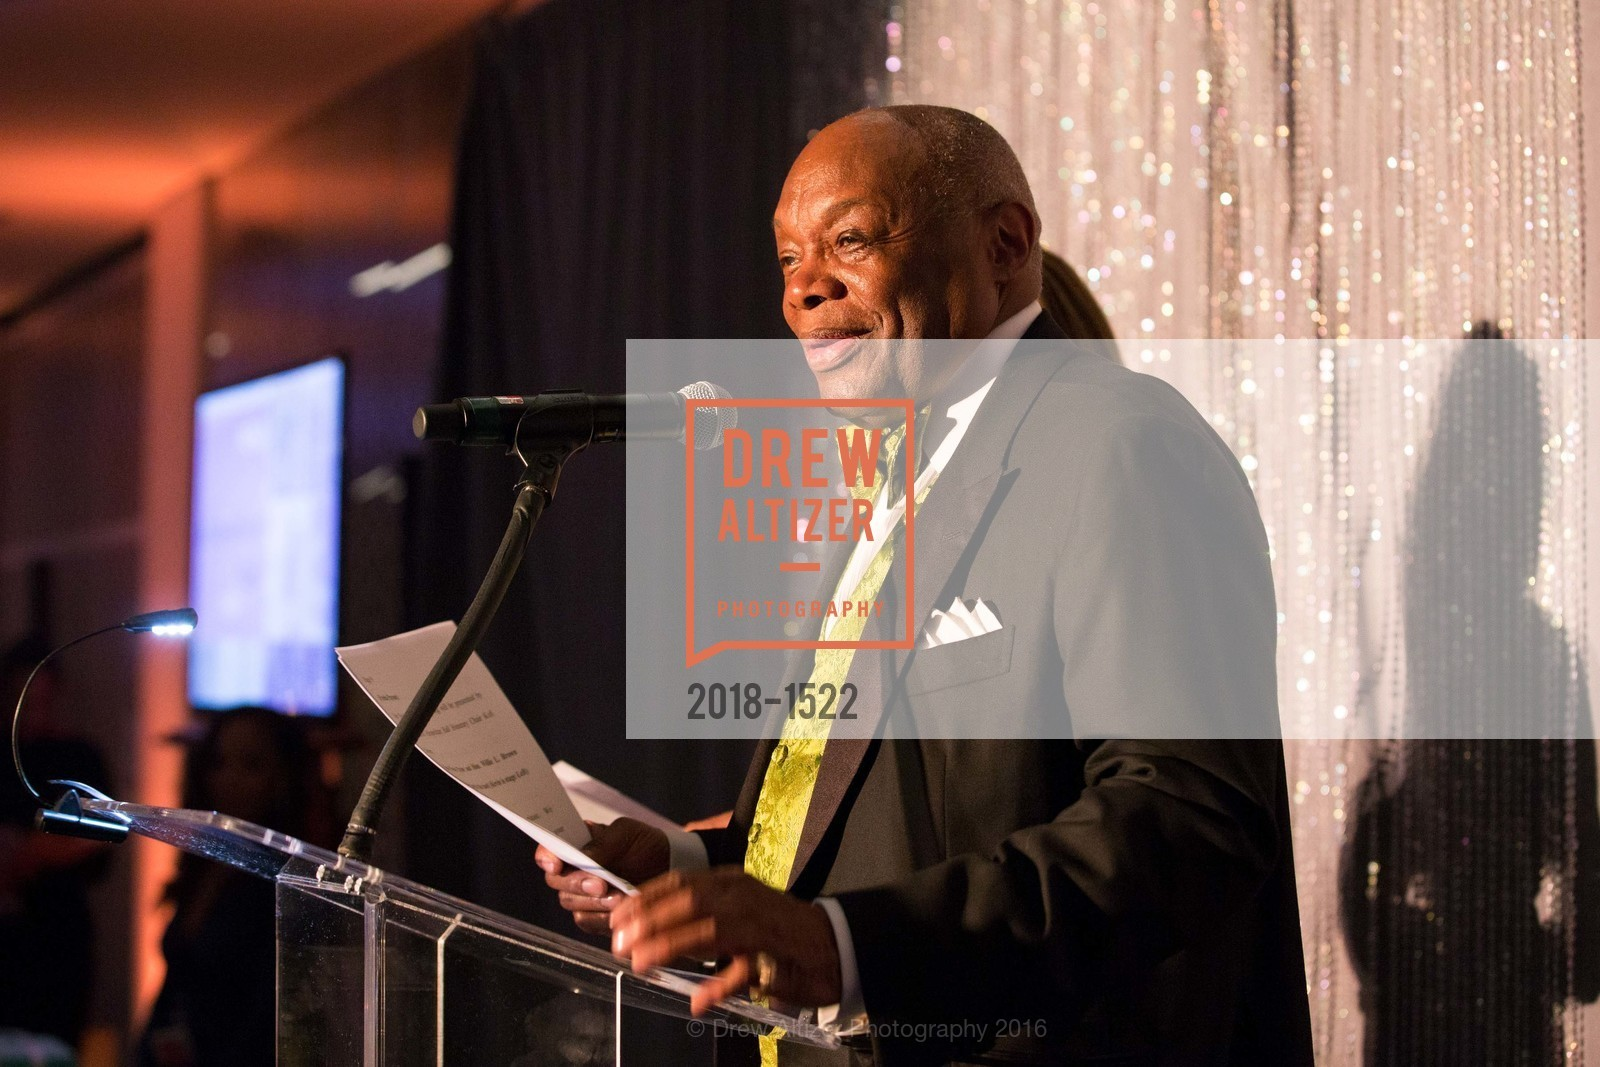 Willie Brown, Photo #2018-1522